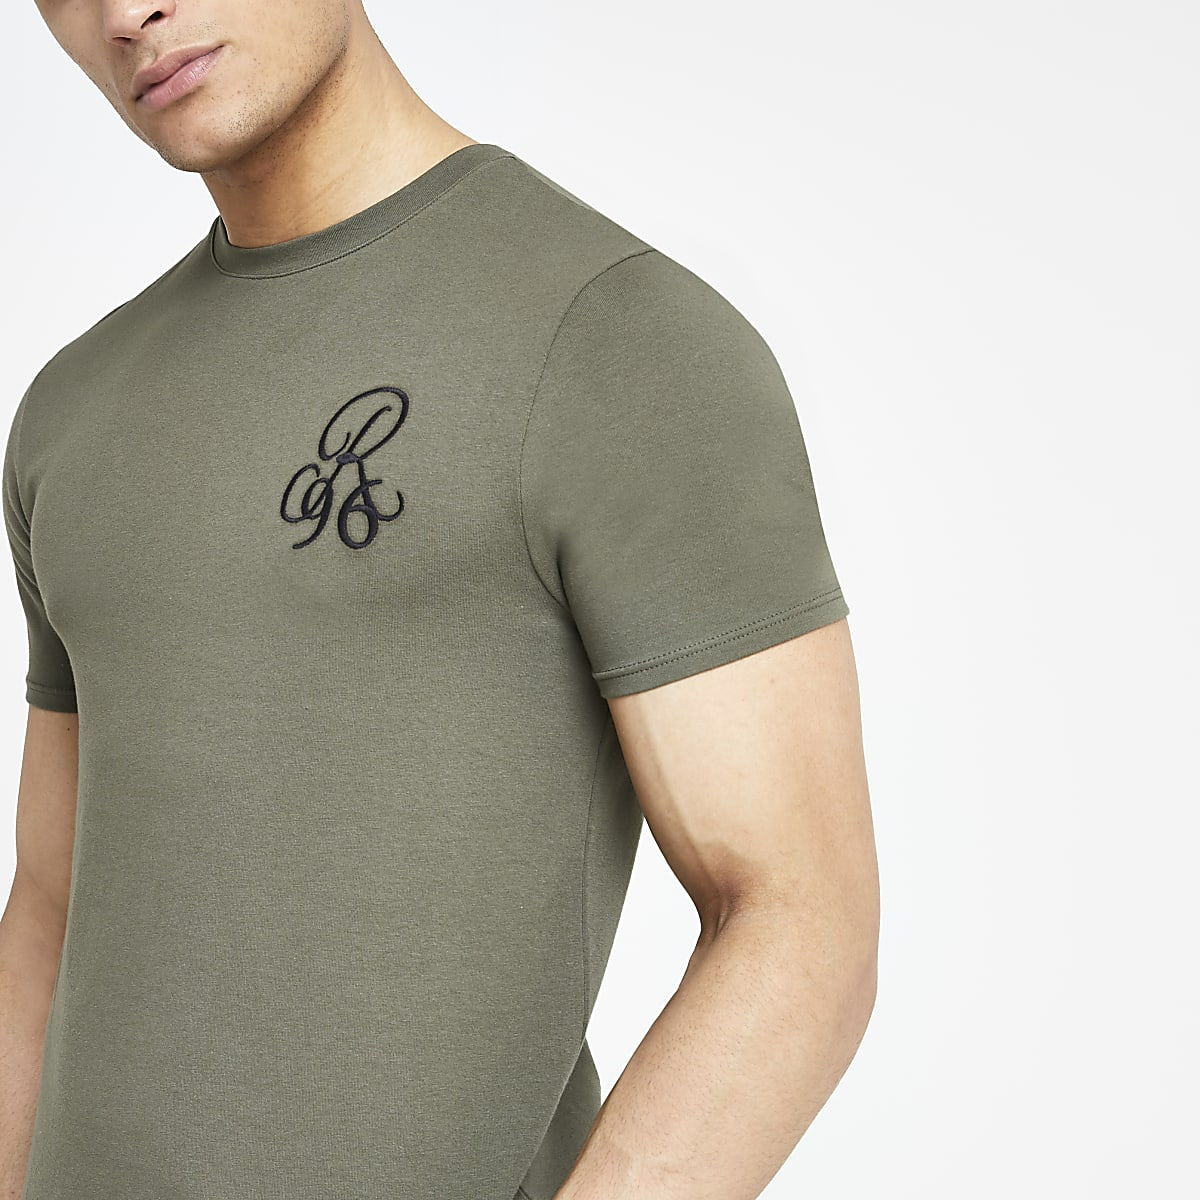 Khaki muscle fit R96 embroidered T-shirt